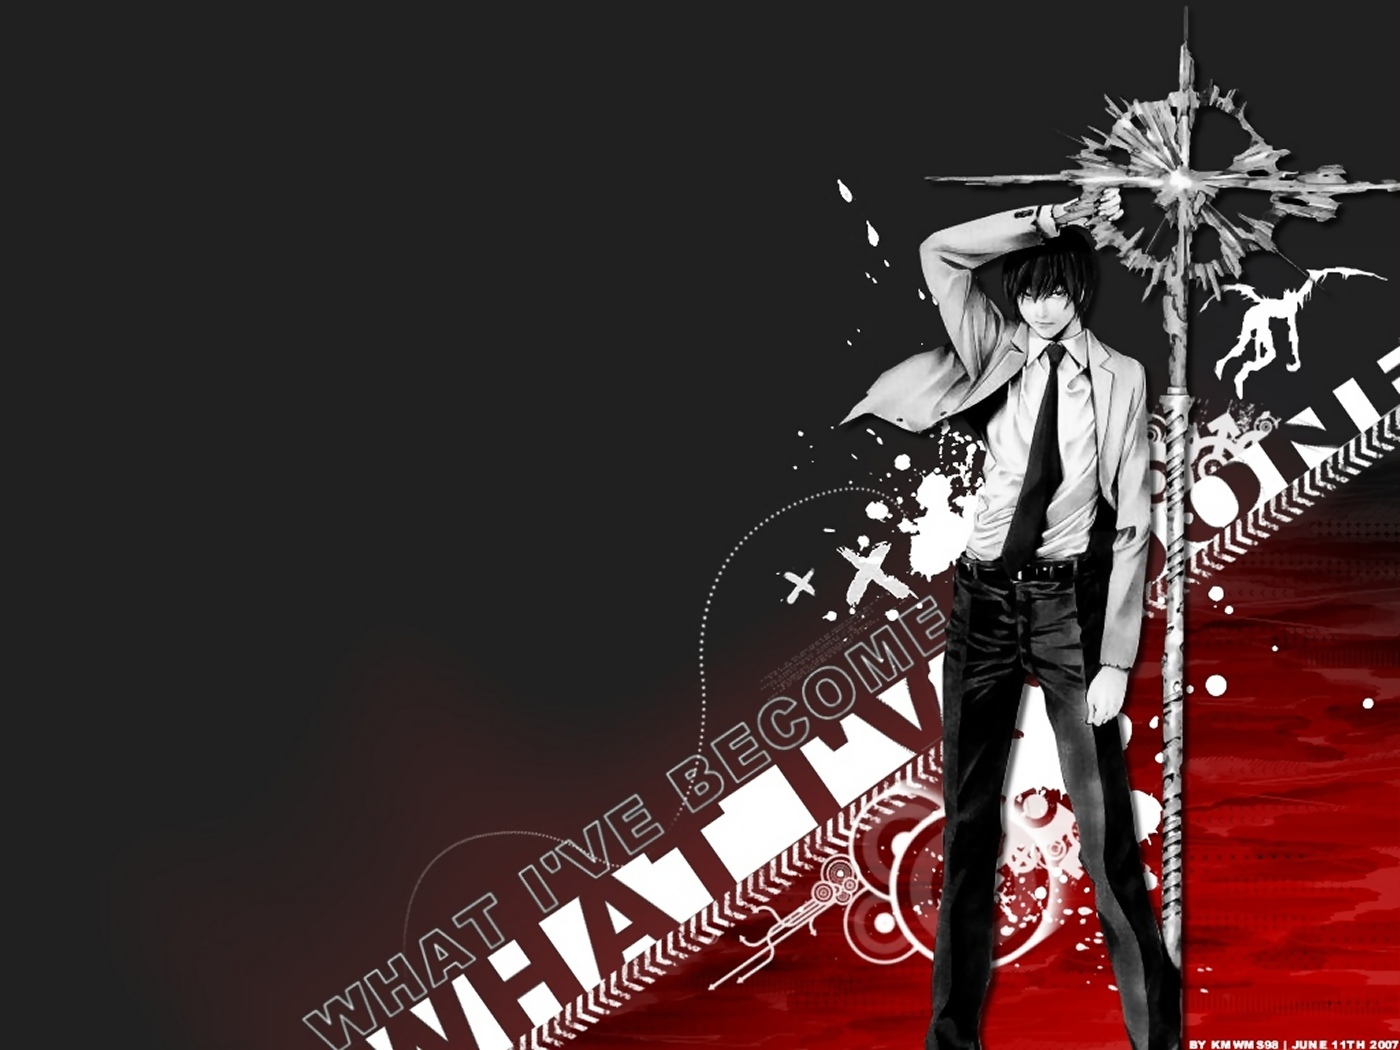 Anime Wallpaper Naruto Shippuden Wallpapers Death Note Hd